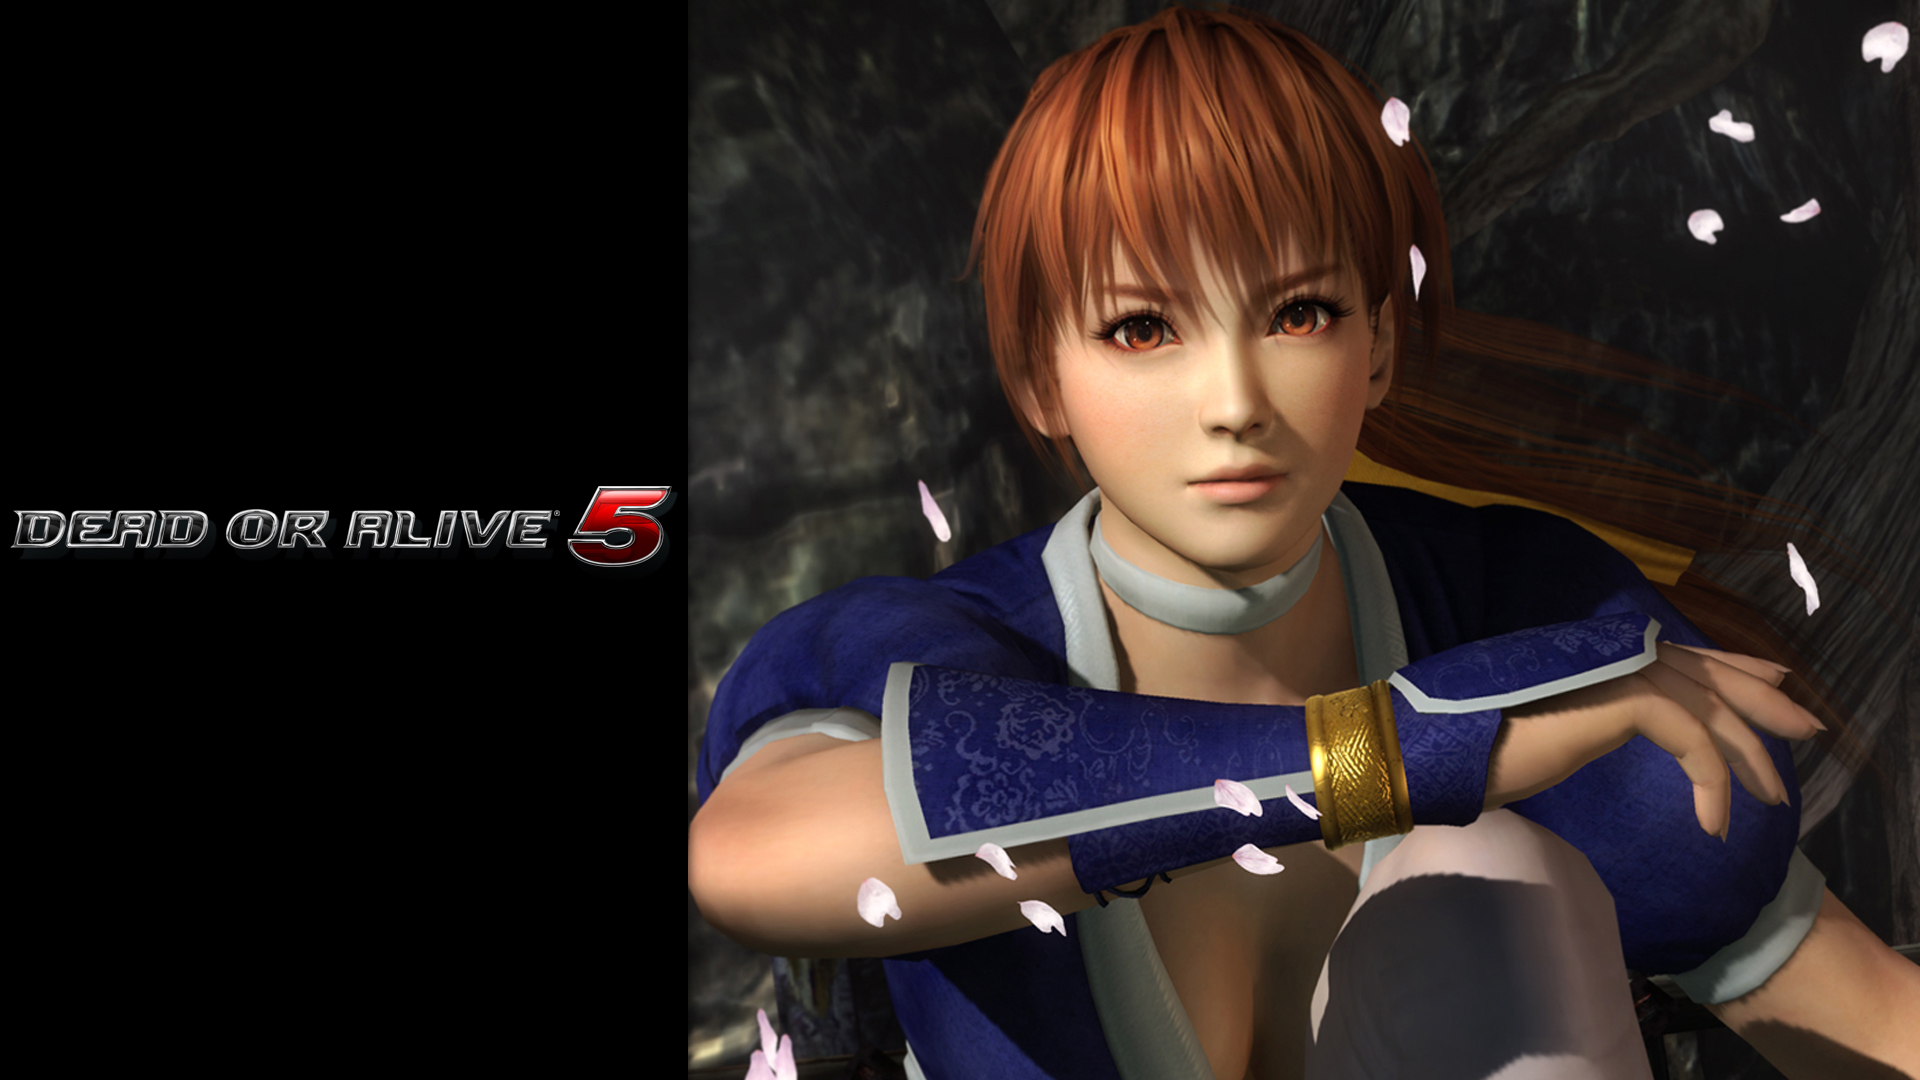 Tag Dead or Alive HD Wallpapers exquisite Latest Updates Pictures 1920x1080